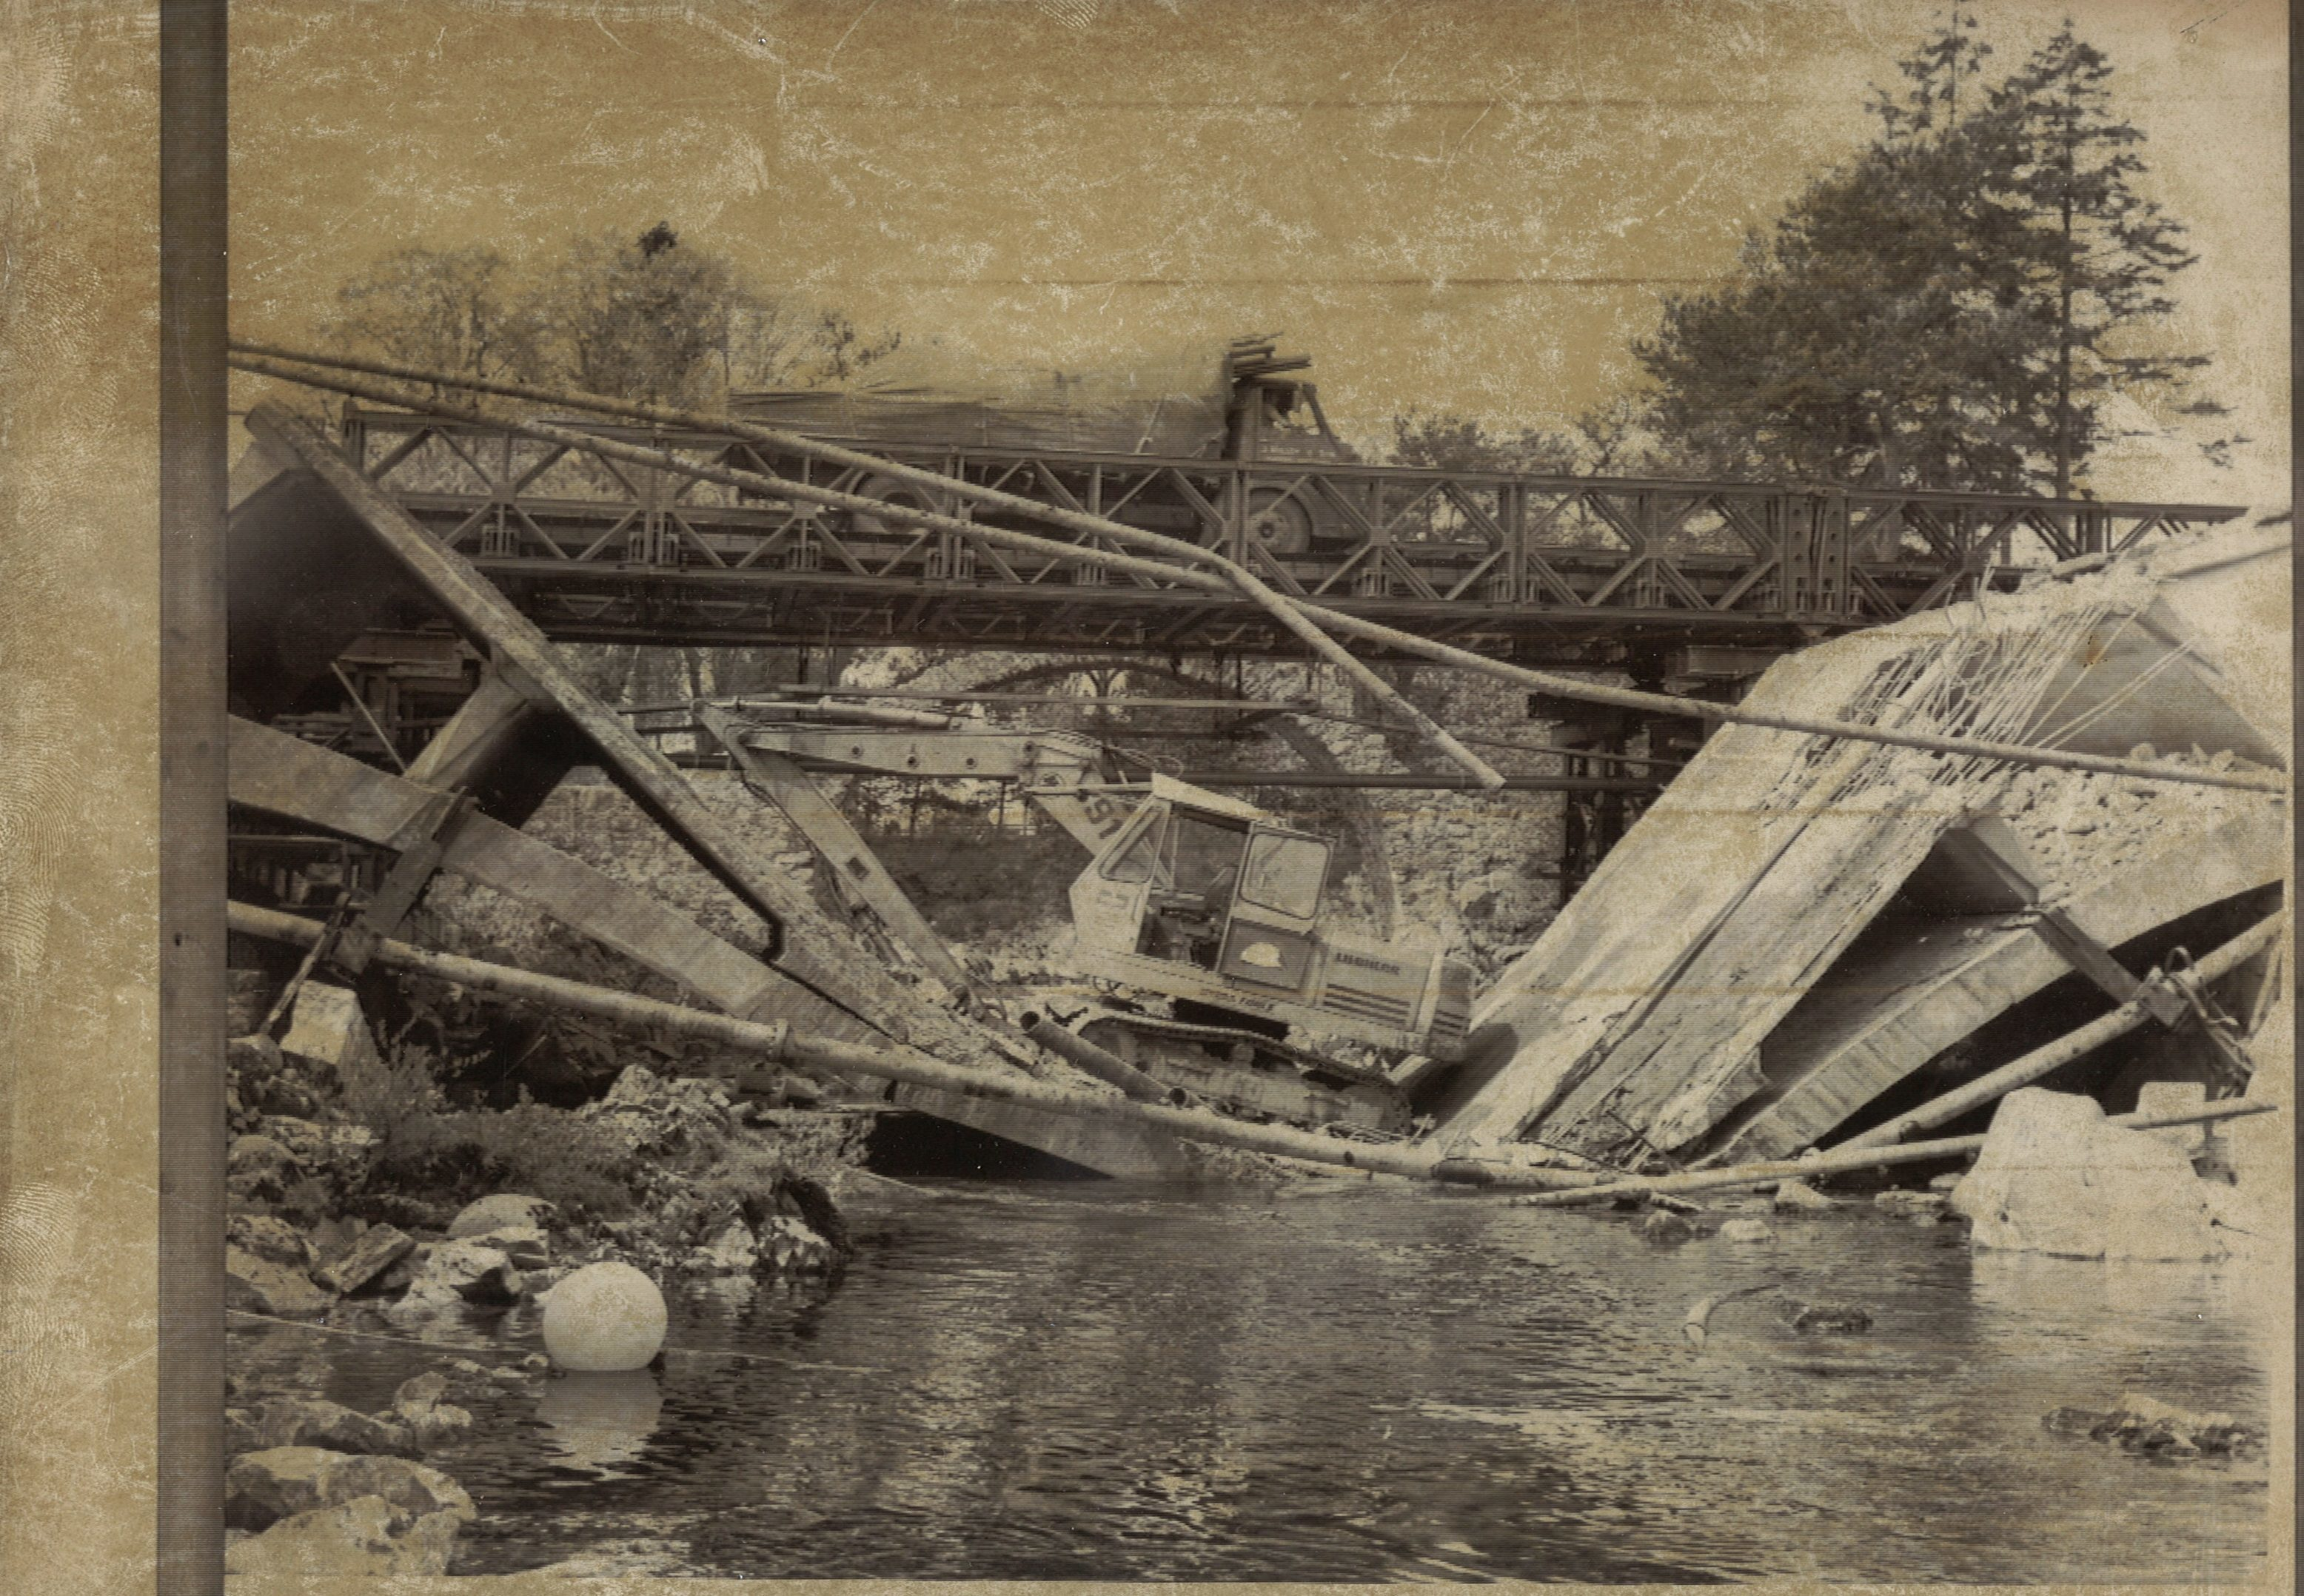 The old road bridge collapsed with hydraulic excavator in 1974